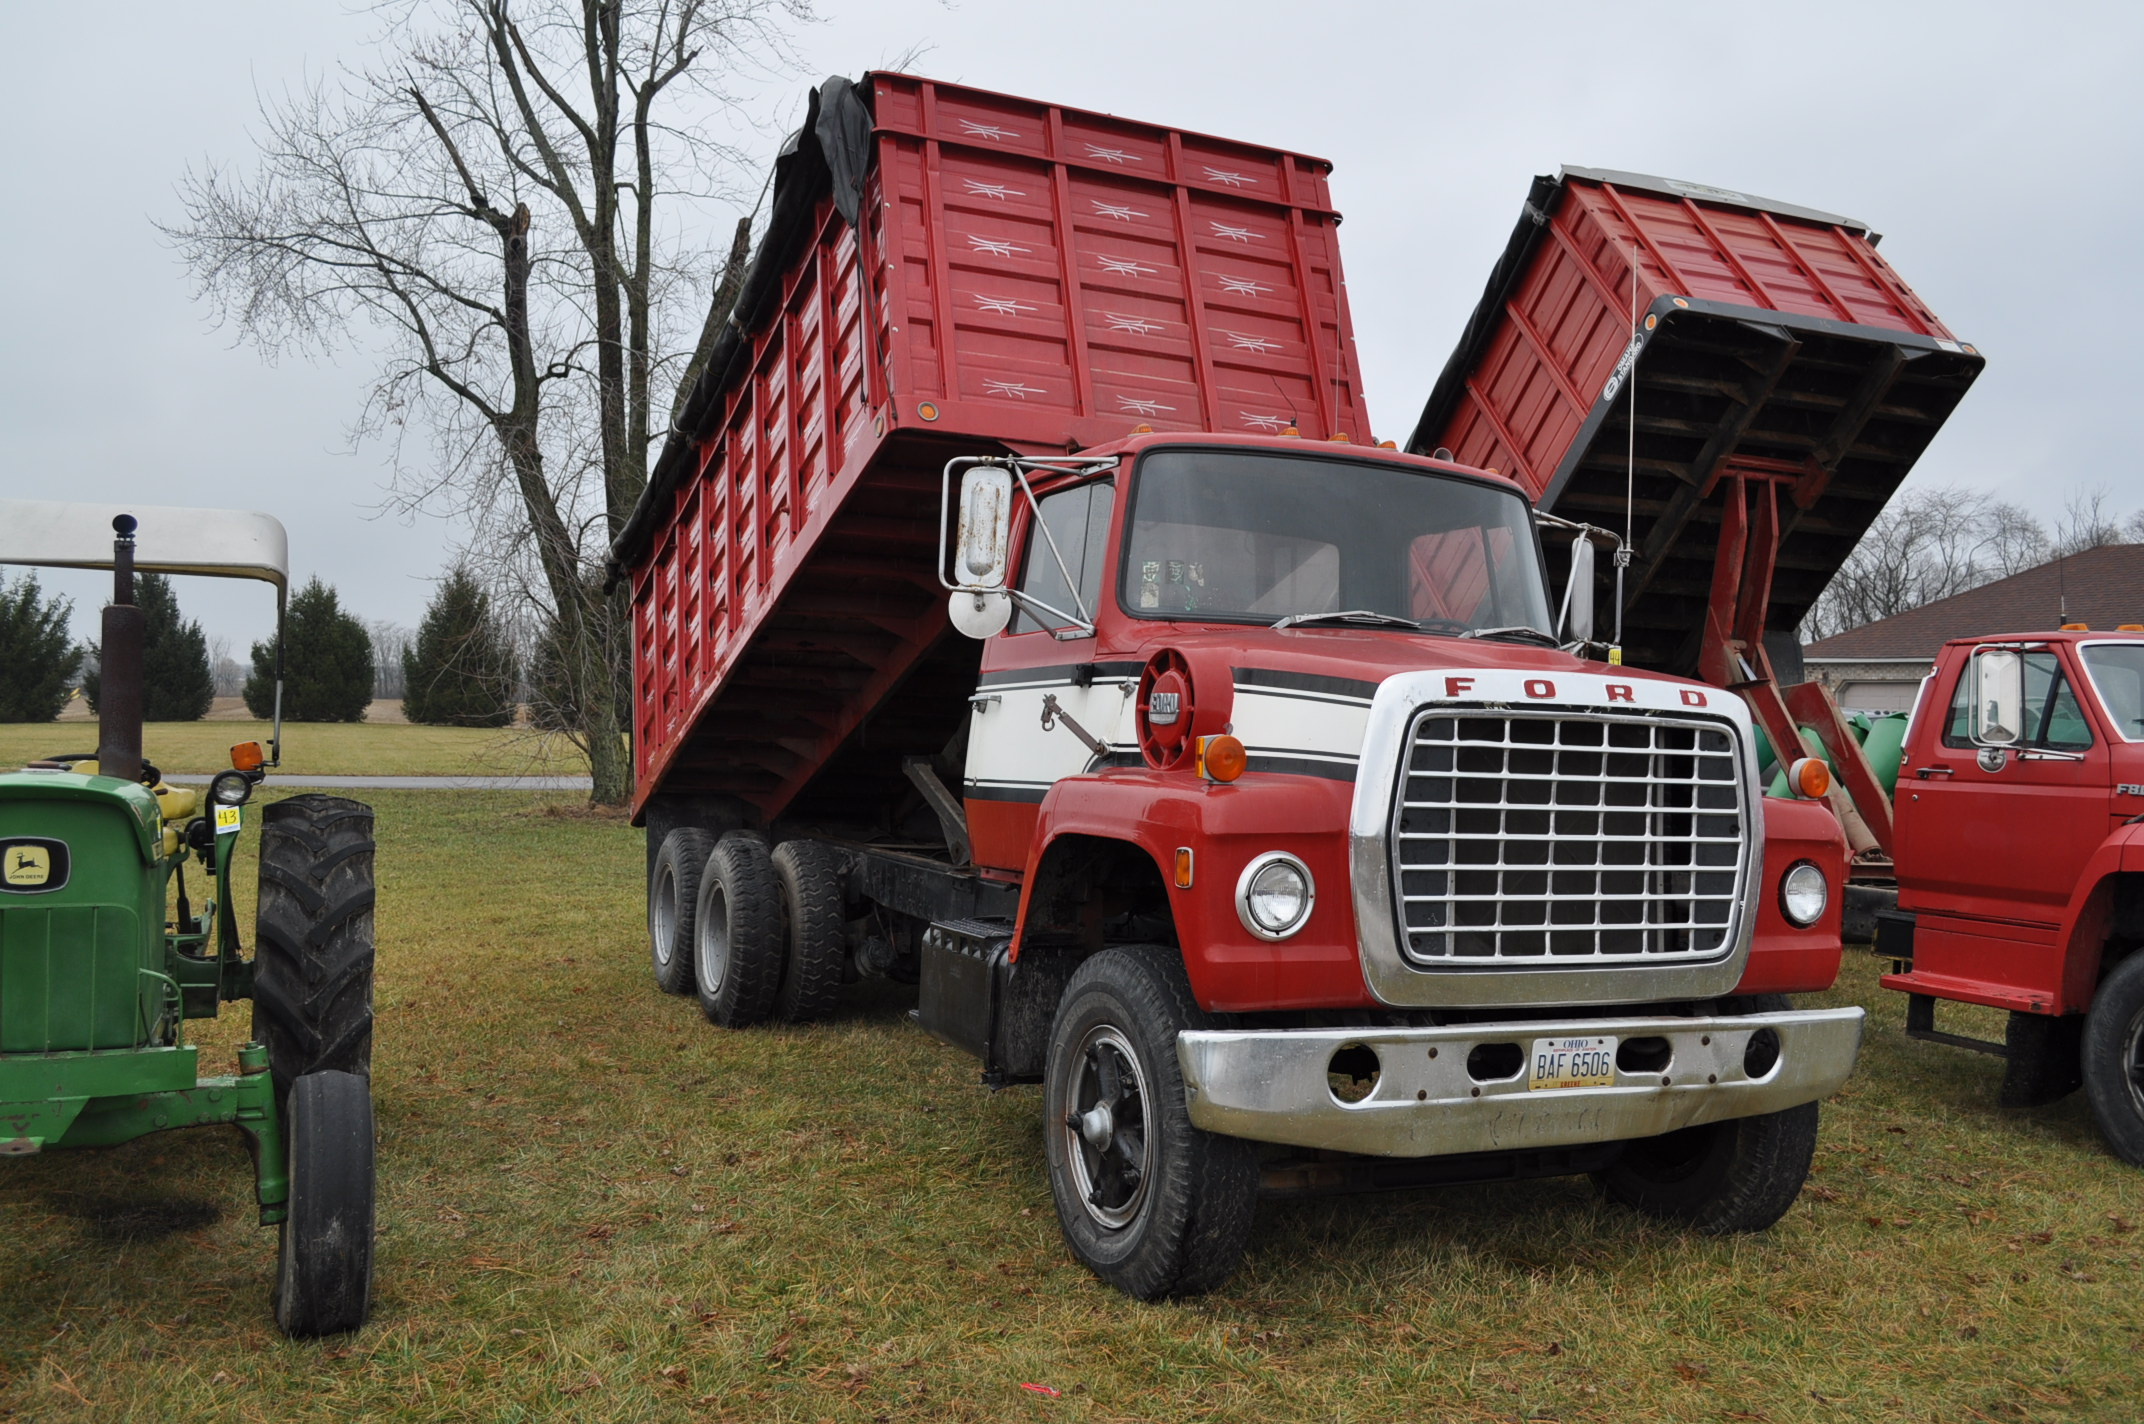 1974 Ford 900 grain truck, tandem axle, gas V-8, 5 + 2, 10.00-20 tires, 18' wood floor, pto, - Image 4 of 26